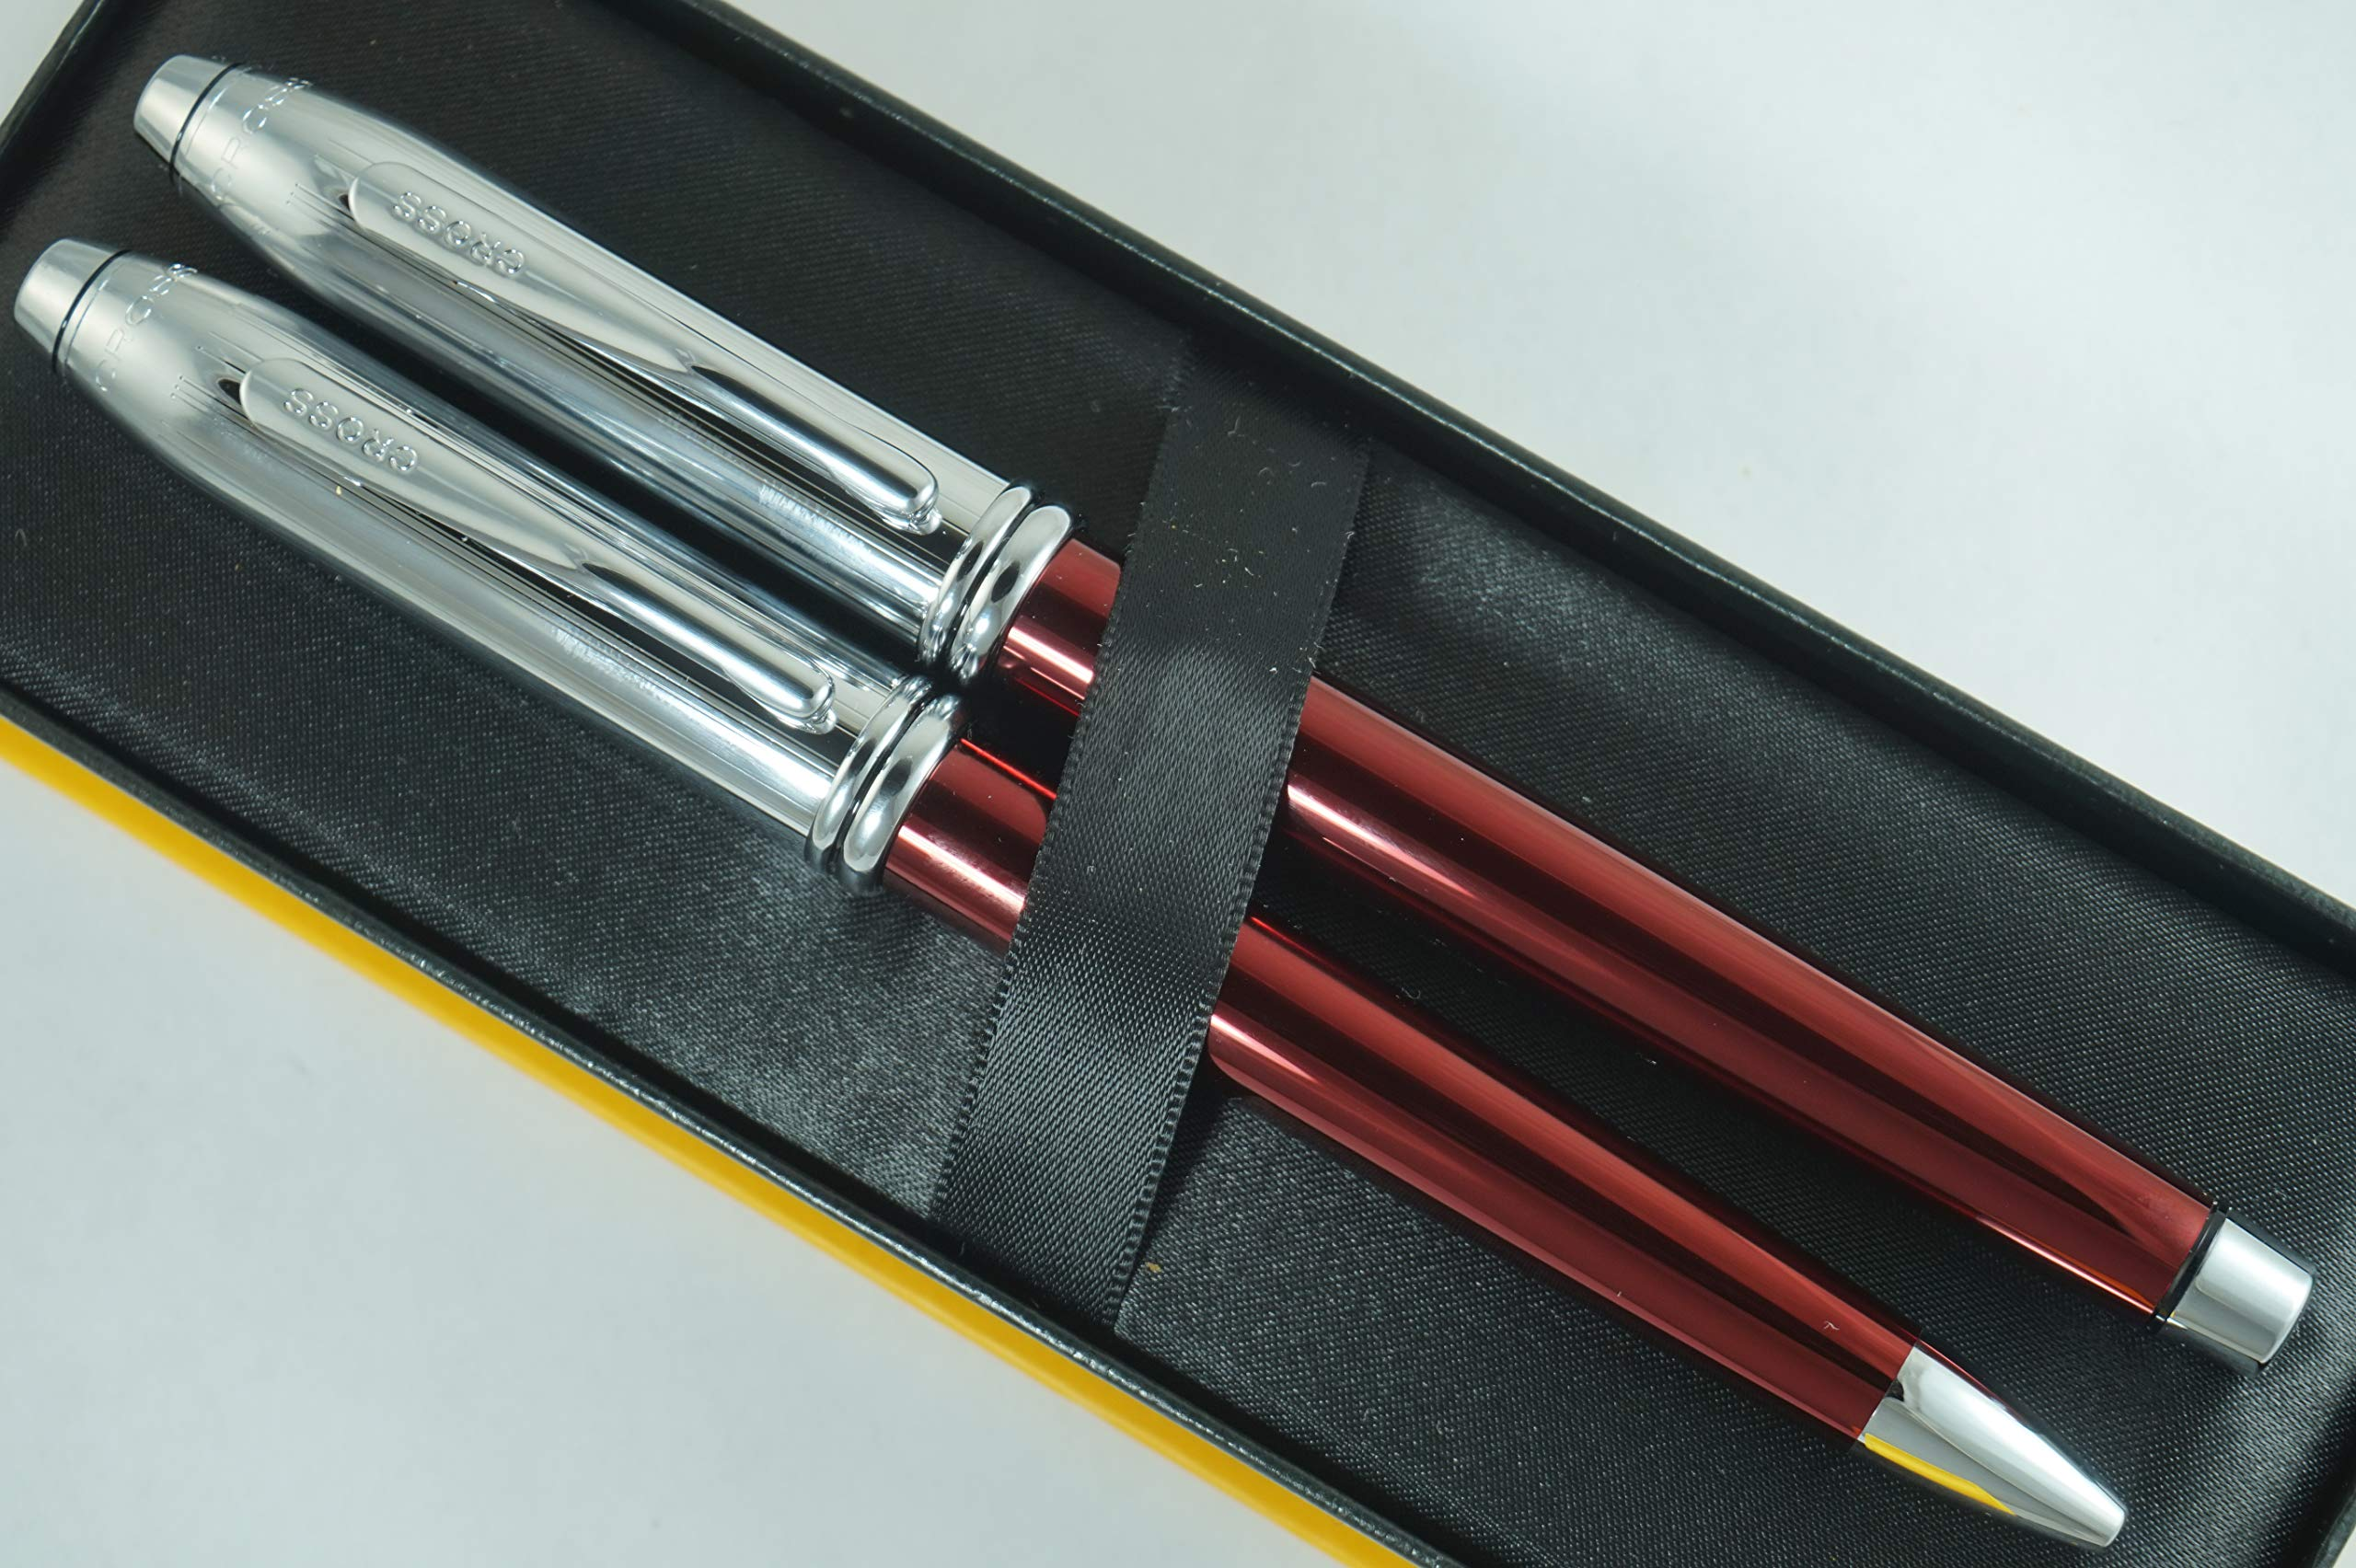 Cross Townsend Limited Edition Series Metallic Ruby Red Selectip Gel Ink Rollerball Pen and Ballpoint Pen Set Rare Combo of Cross Pen Sets by A.T. Cross (Image #4)